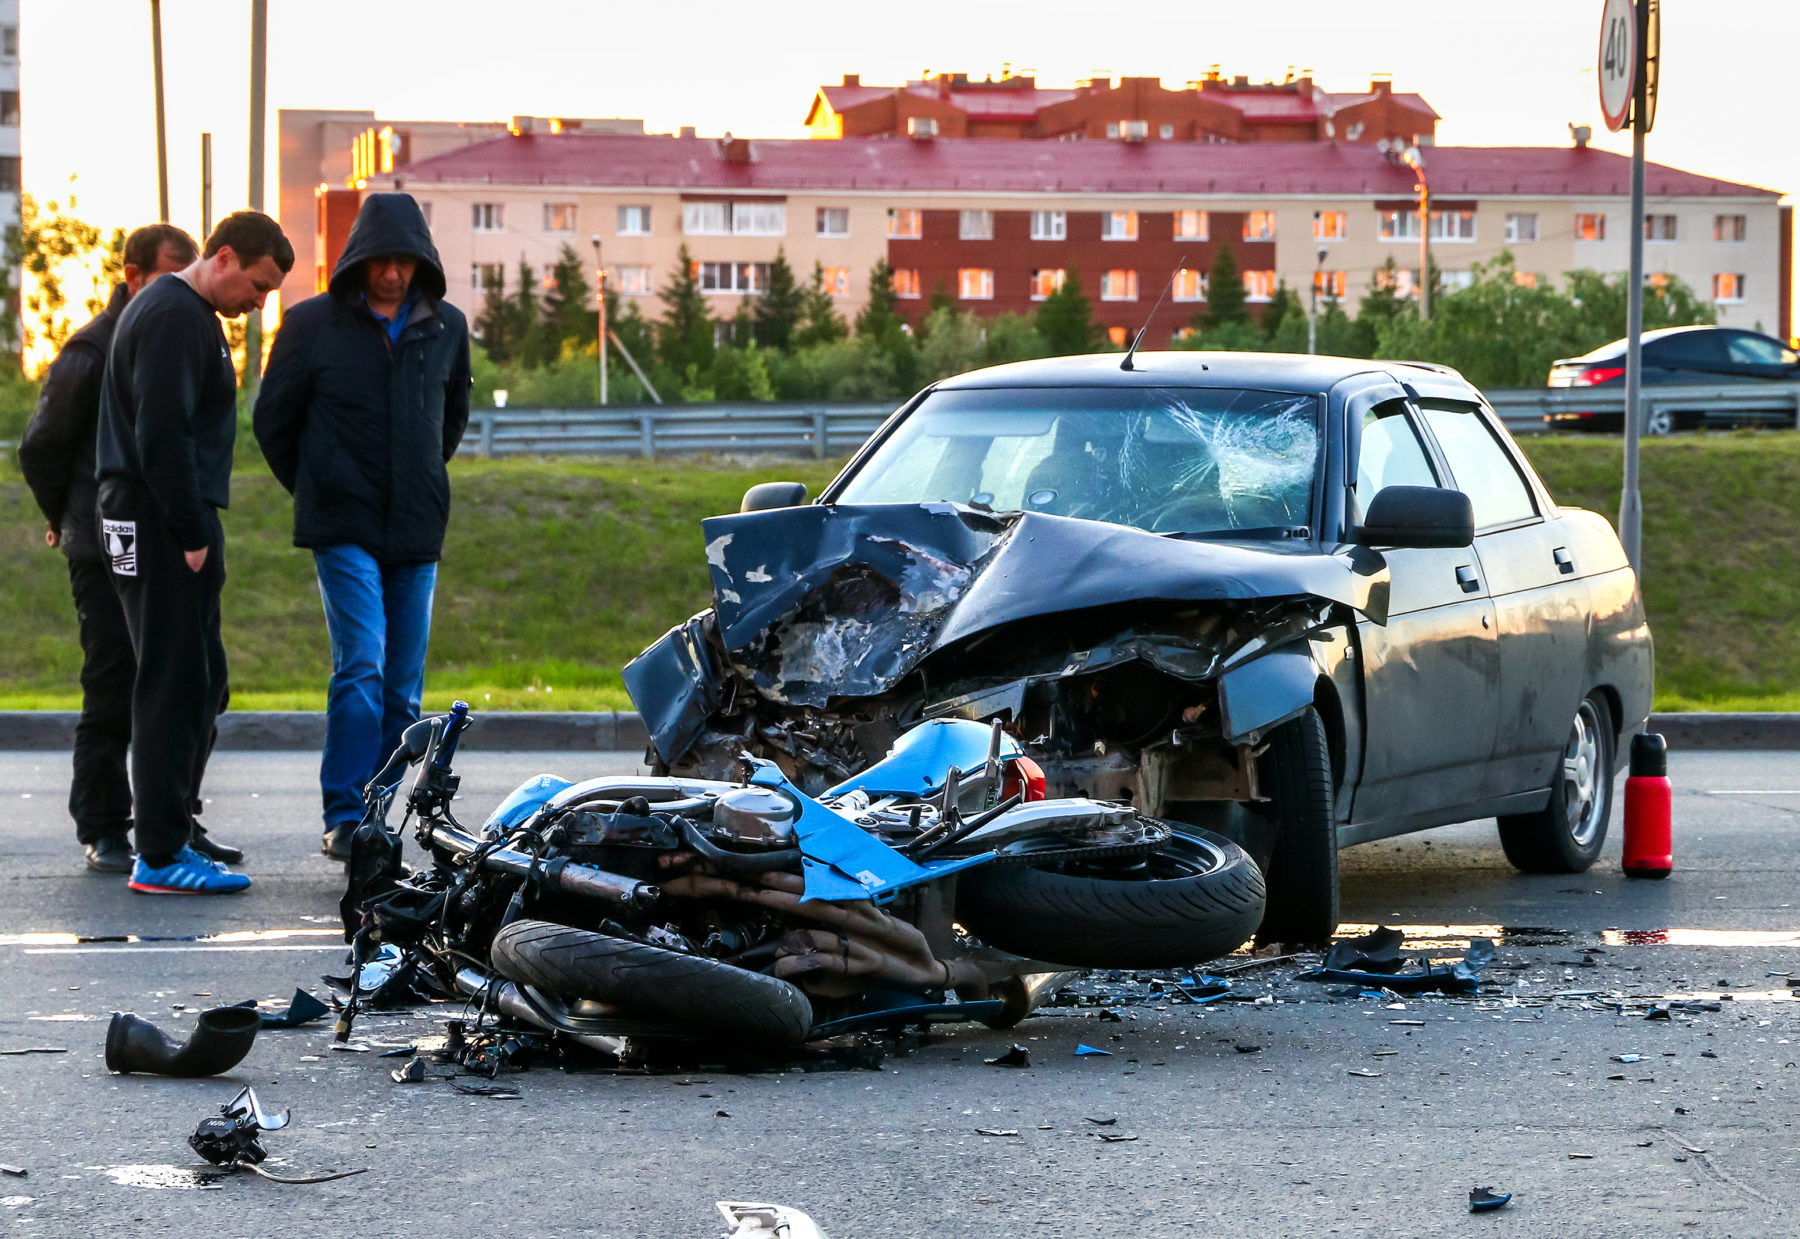 Motorcycle Accident in La Vergne, Tennessee